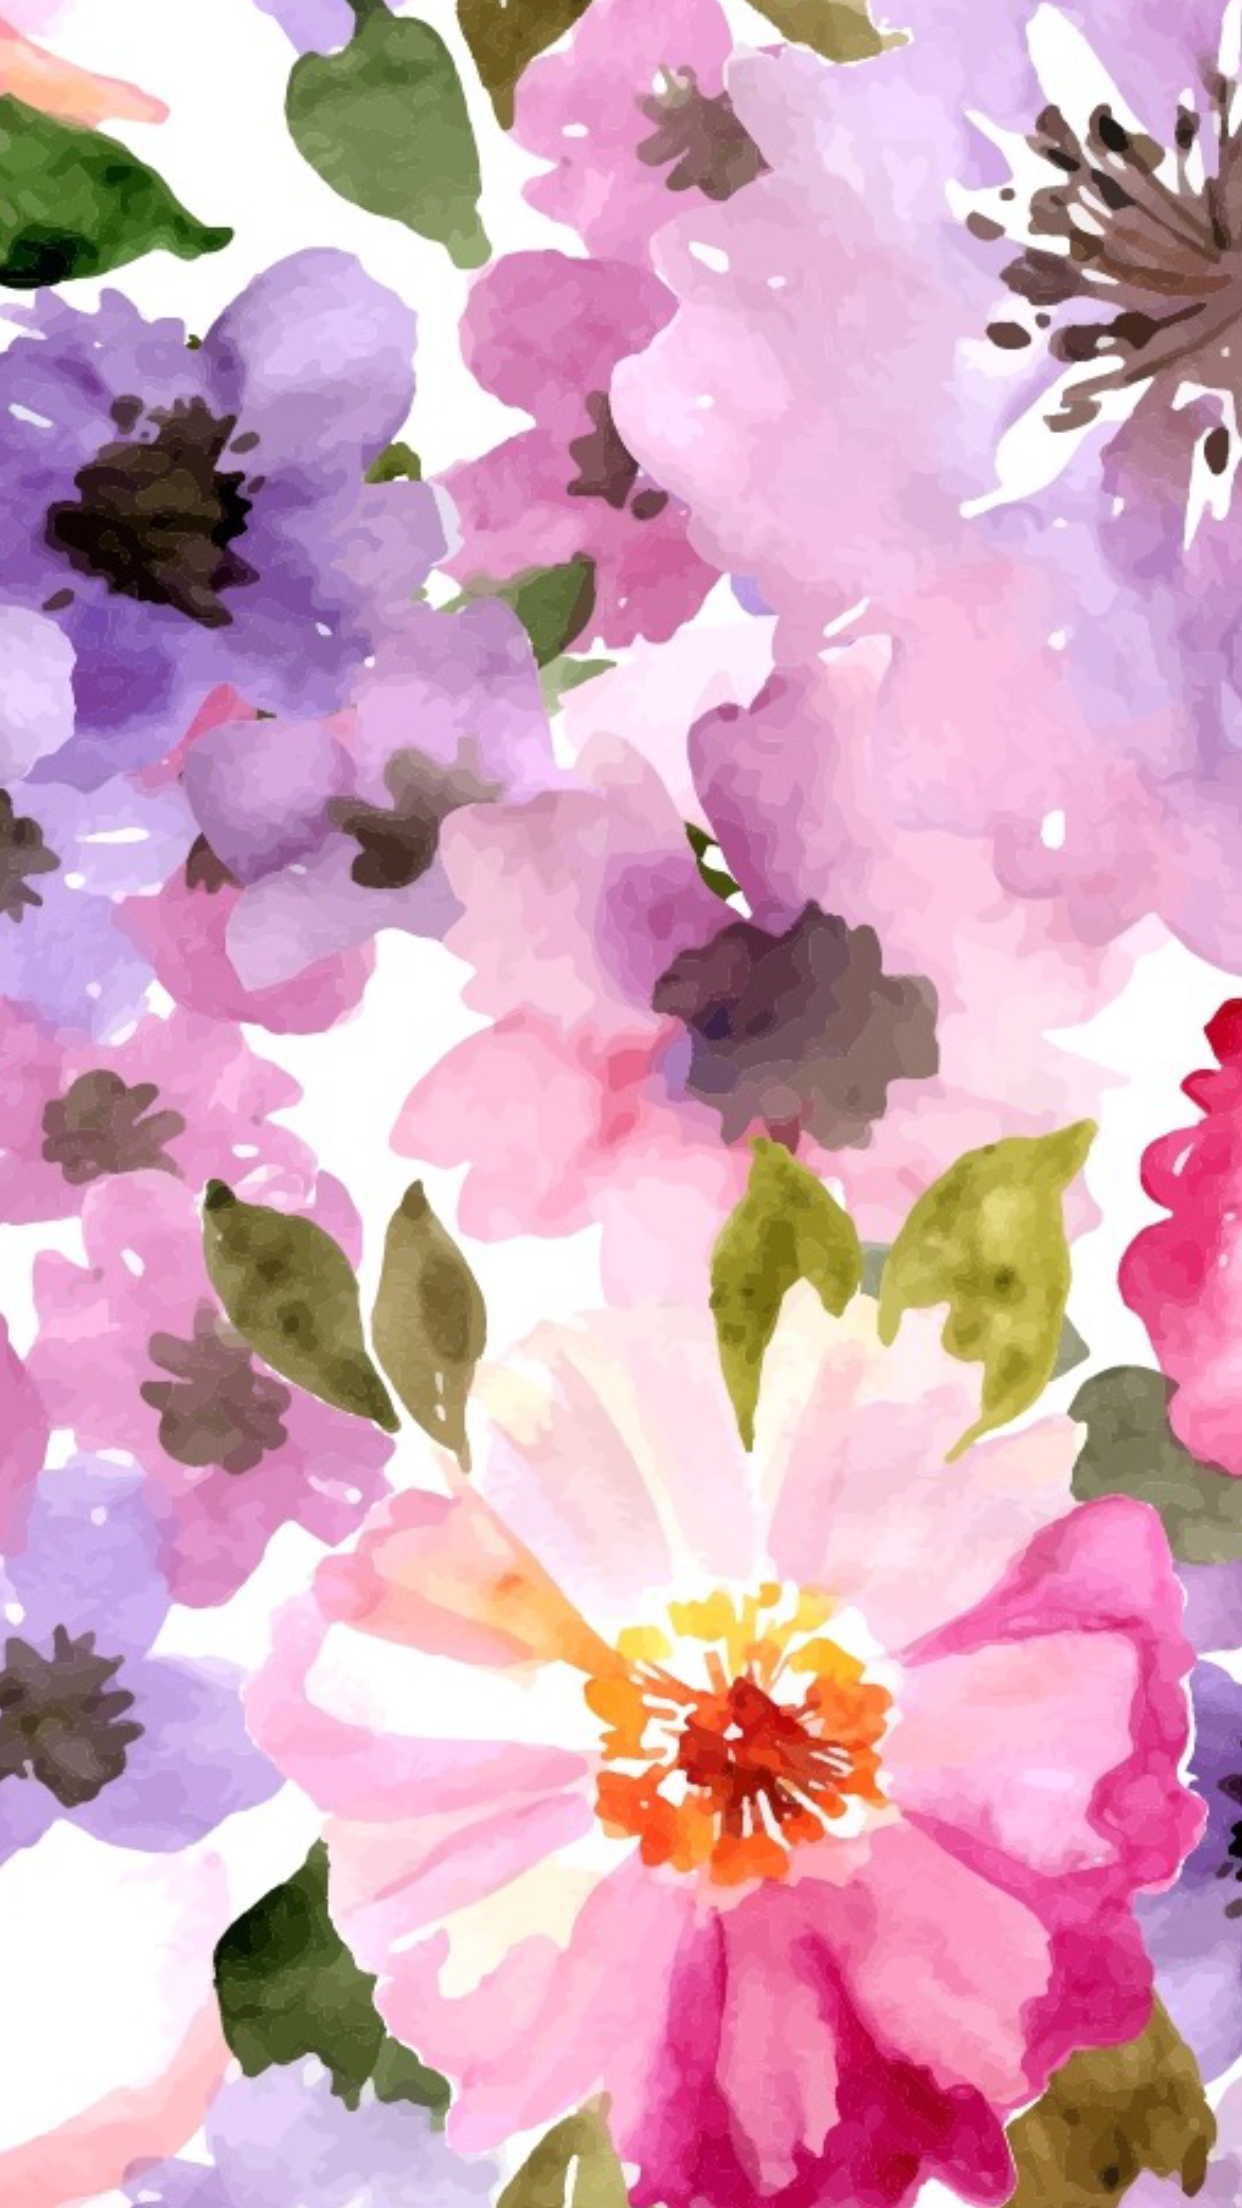 Iphone Wall Tjn Floral Wallpaper Watercolor Flowers Floral Watercolor